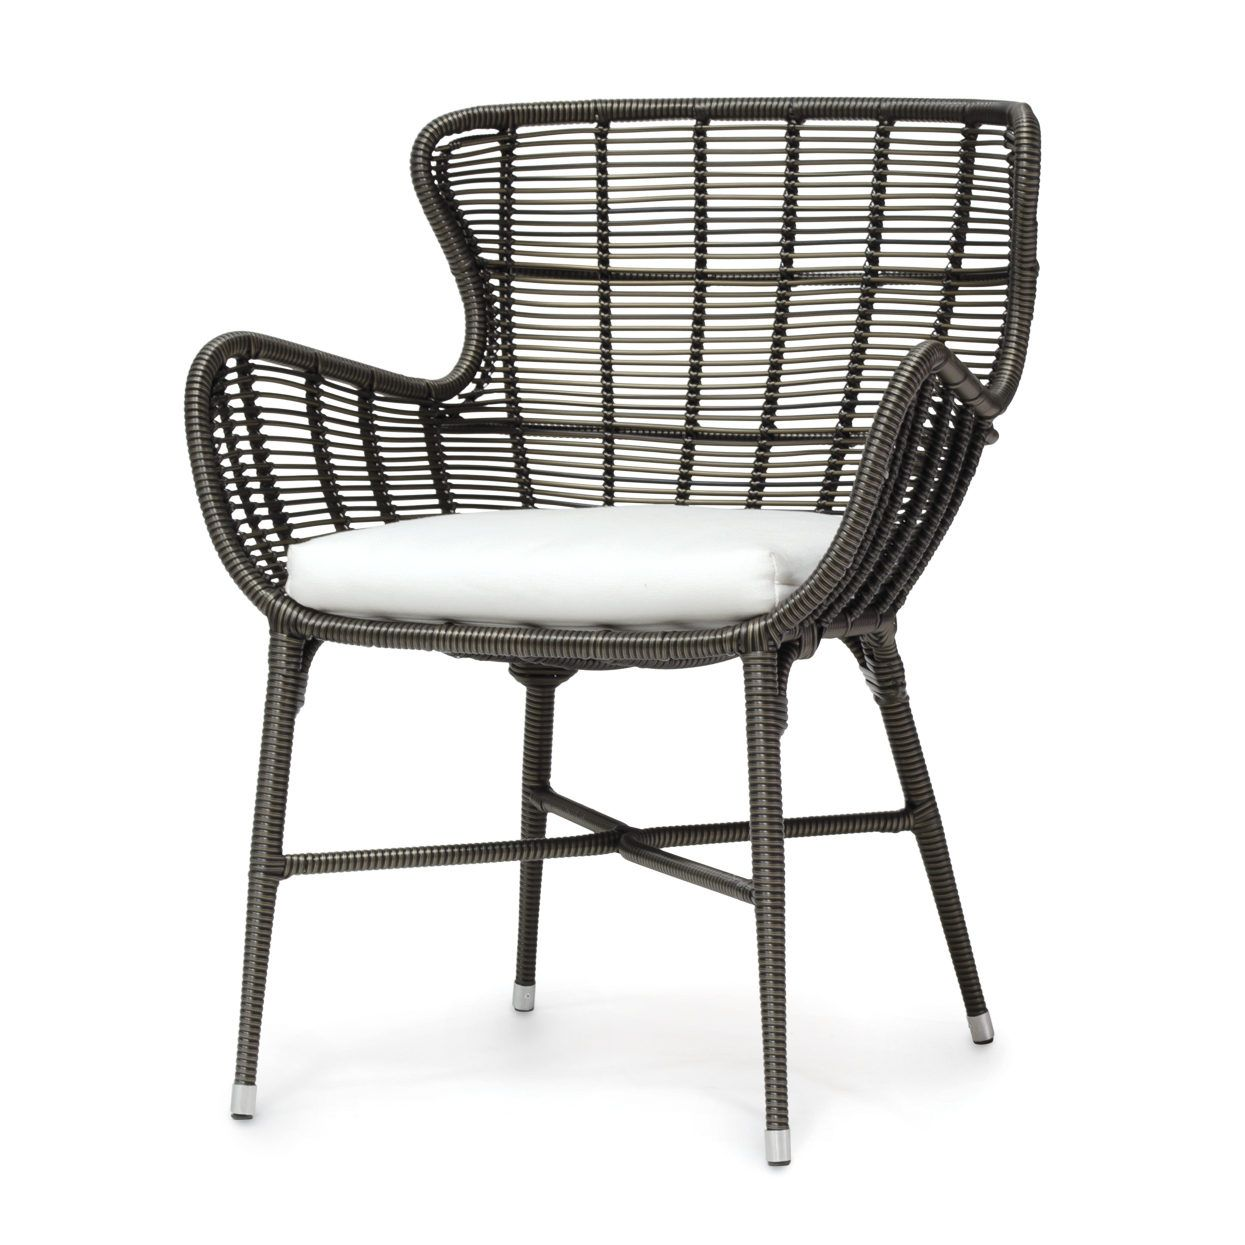 www palecek com products 793310 o 02 02 palermo outdoor chair